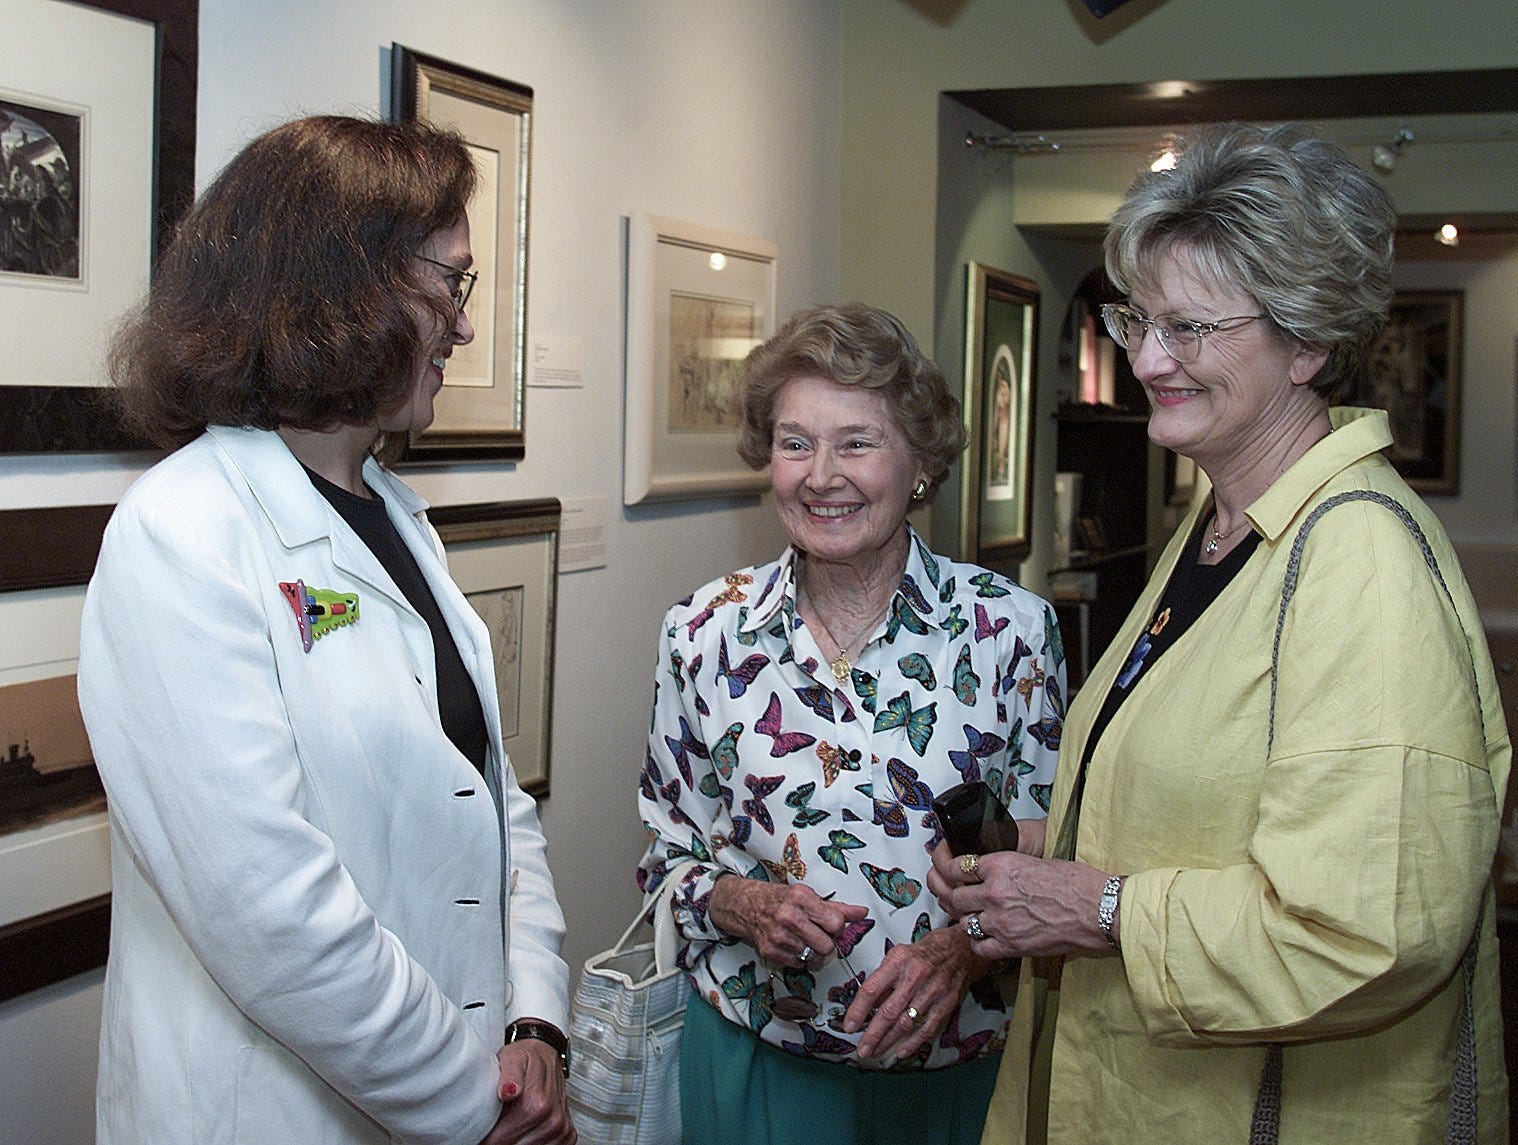 5/18/2000 Regan Gammon, Jenna Welch and Nelda Laney share a moment while on a tour of the Adair Margo Gallery and the art work on display.